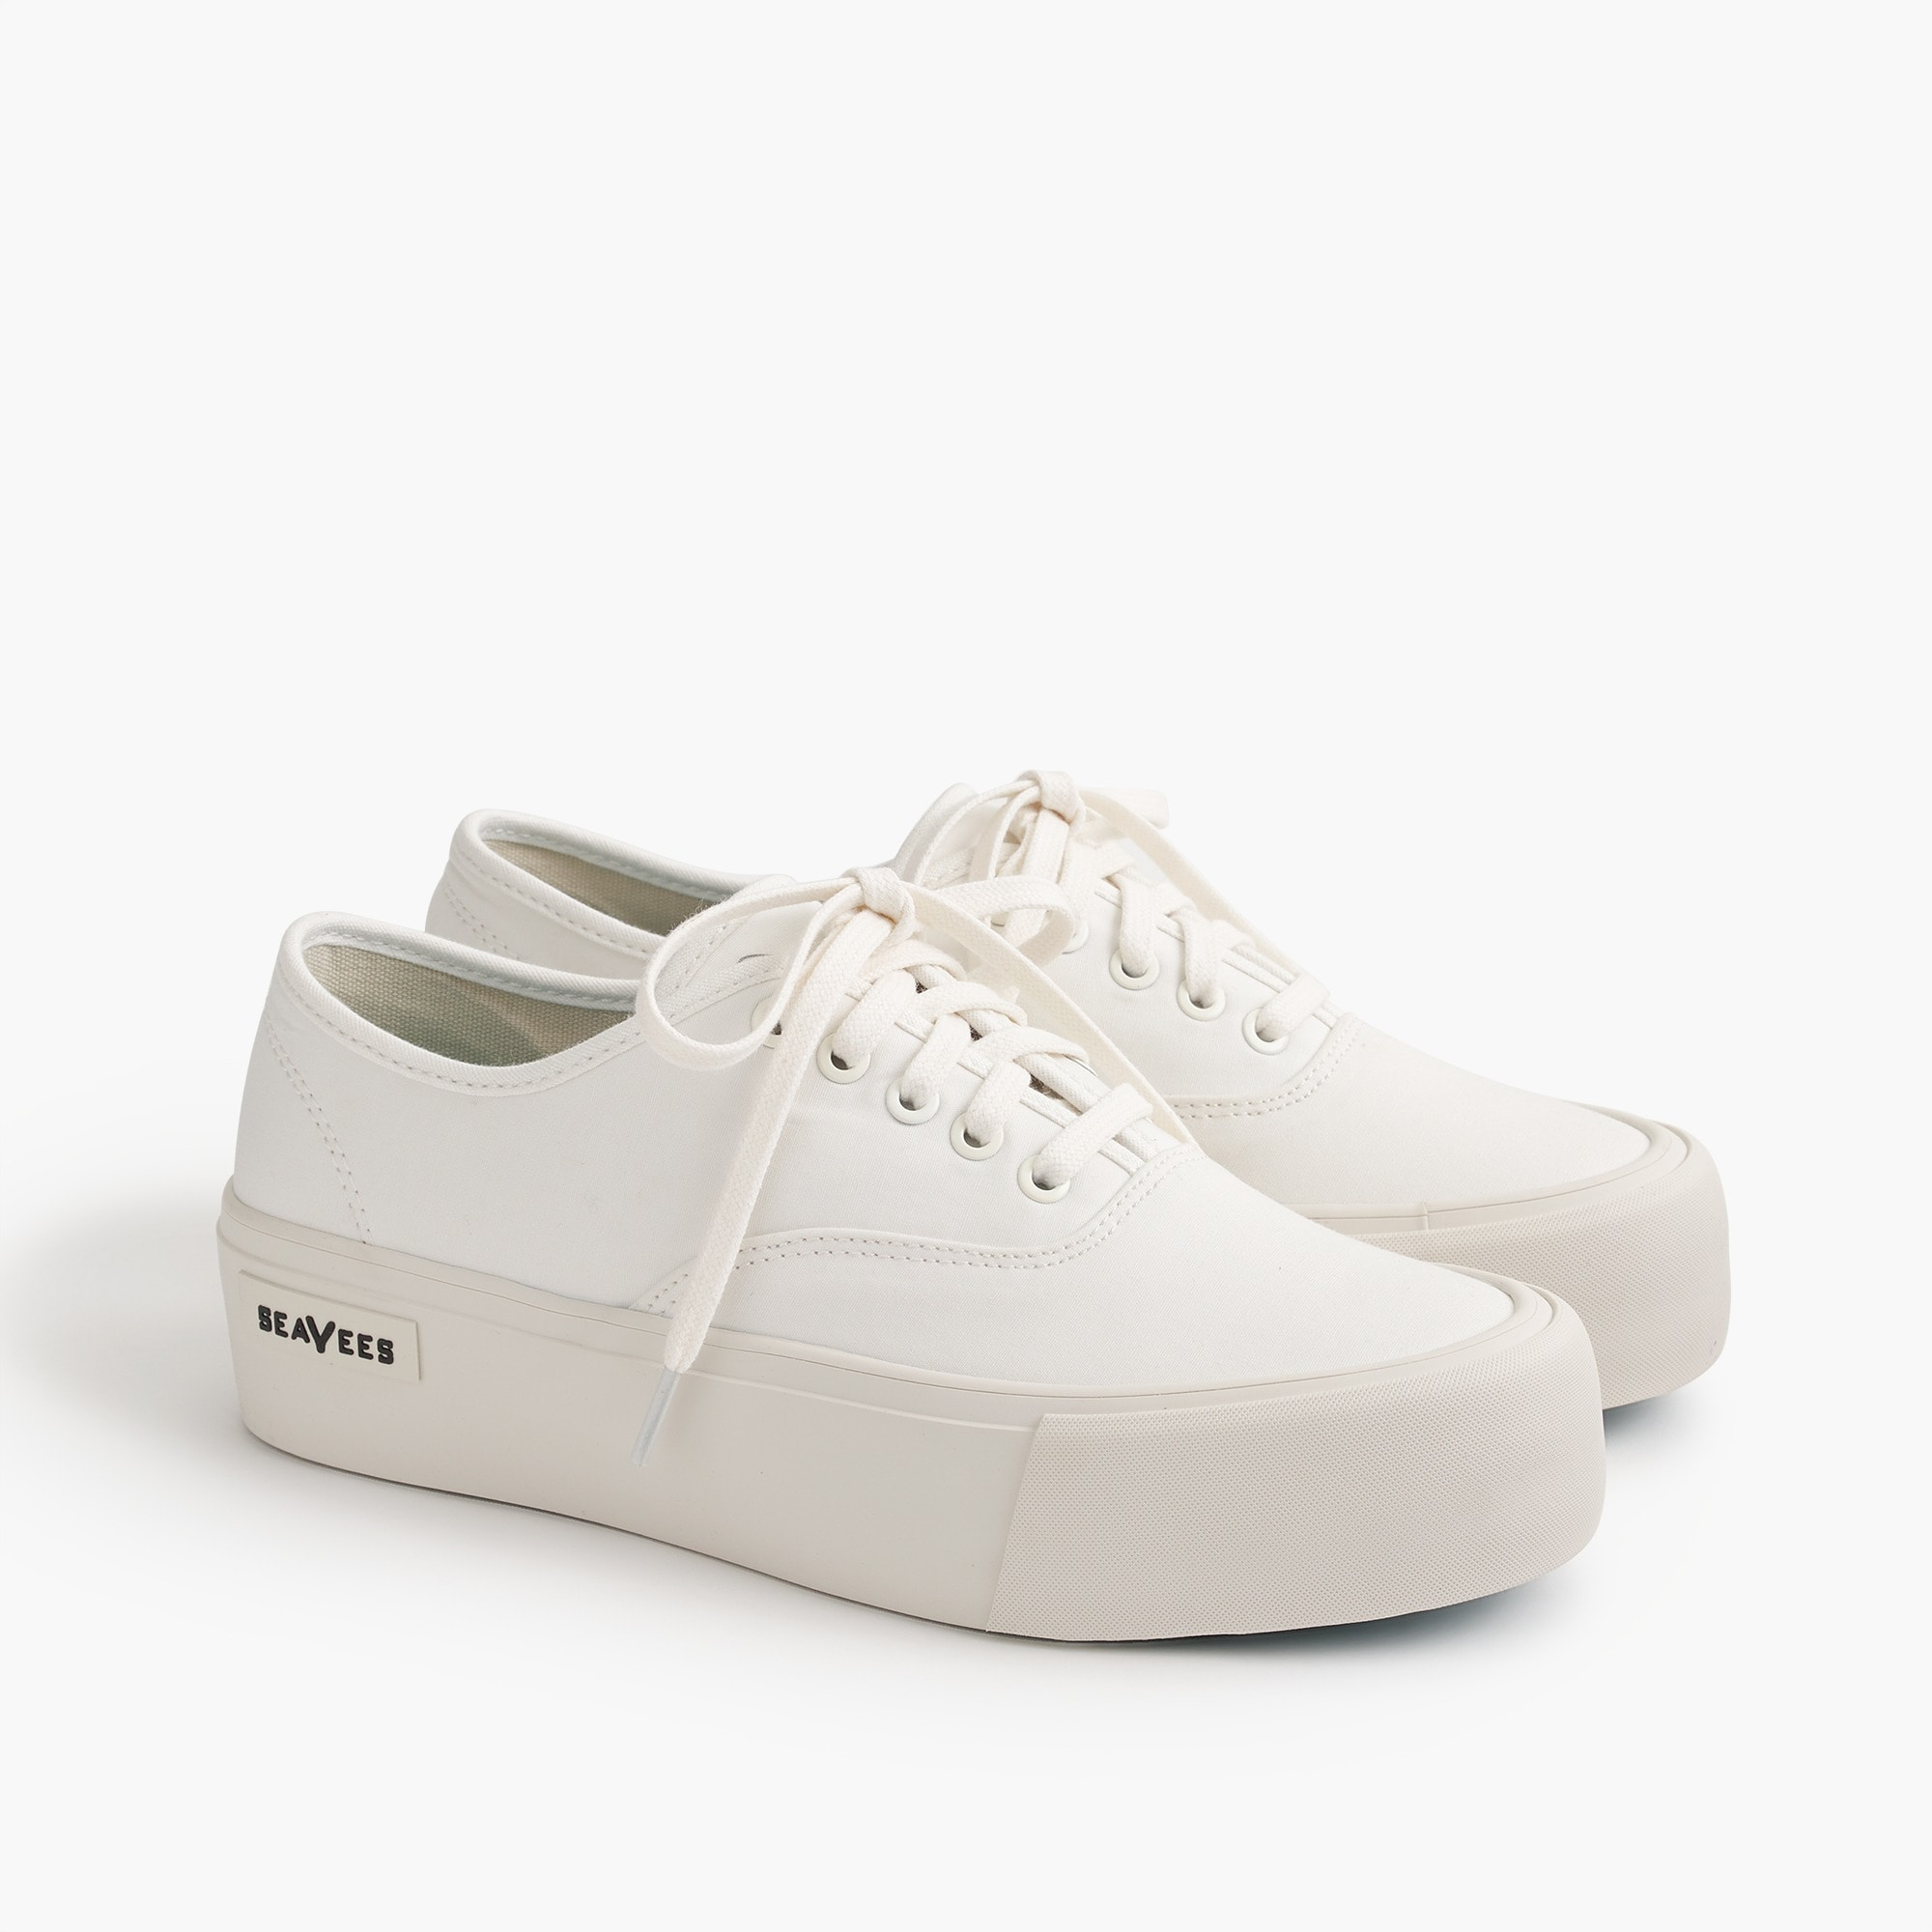 SeaVees® for J.Crew Legend platform sneakers women j.crew in good company c